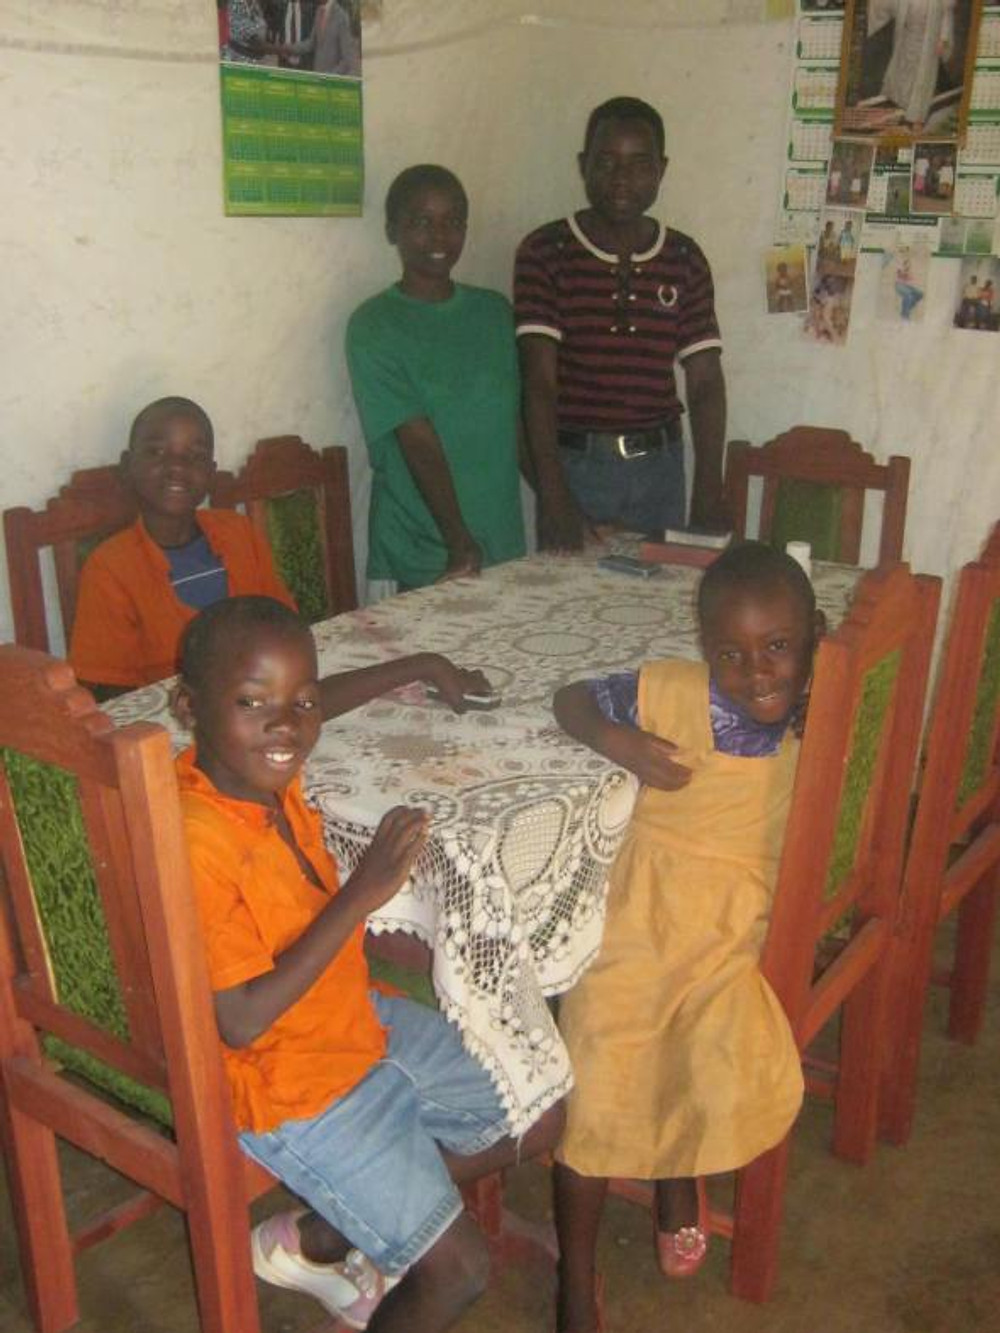 A new table for the the Phiri family! Other families are able to buy beds and other simple, yet profound, dignities.